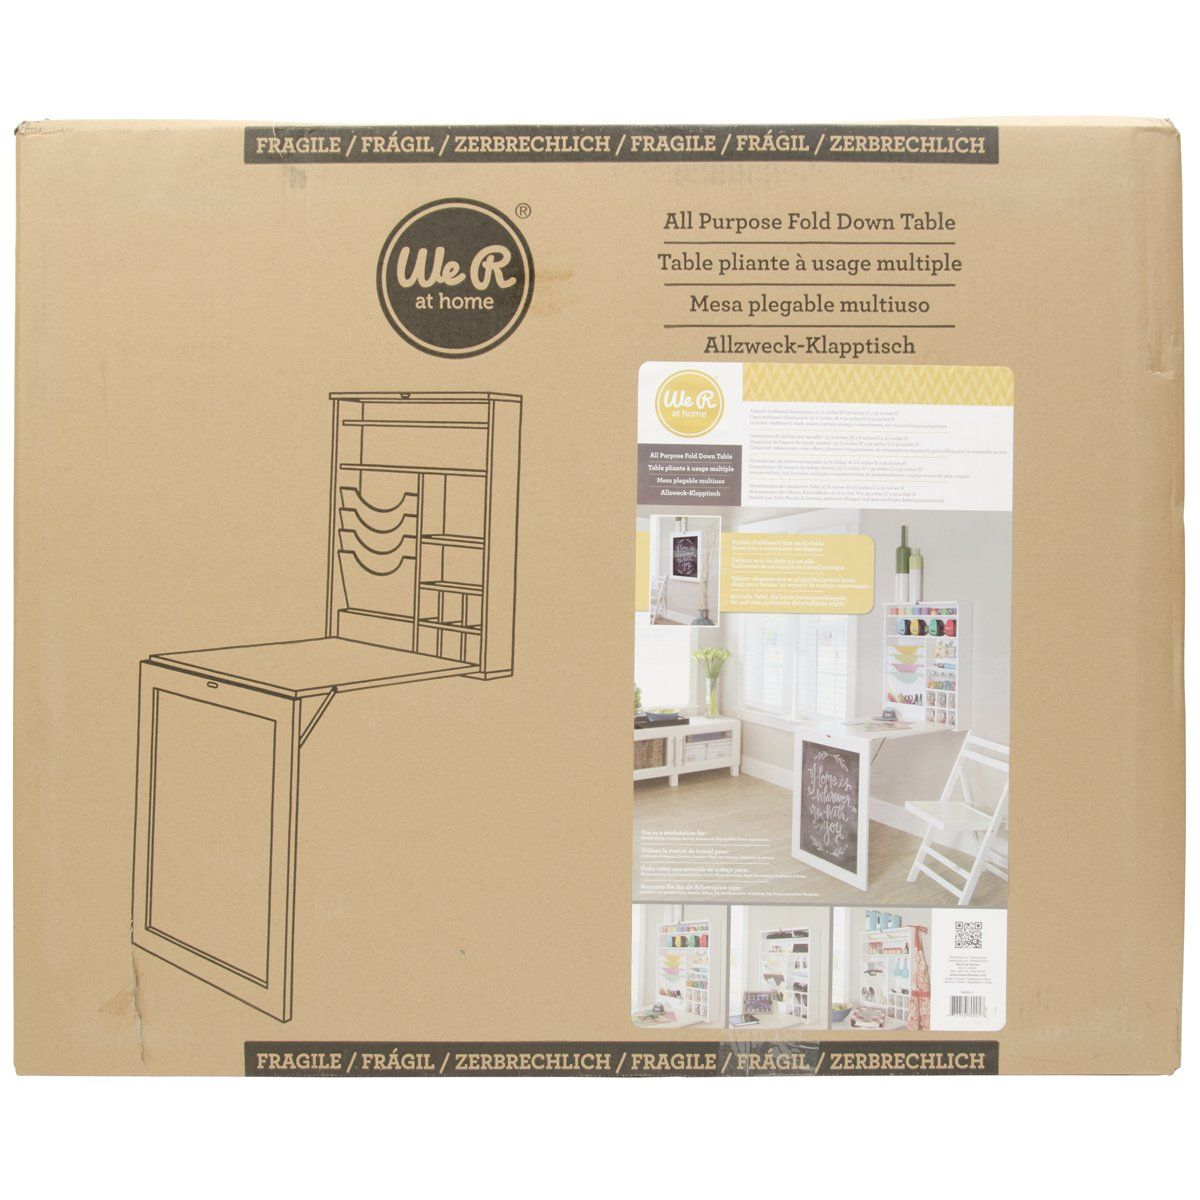 Amazon.com: All Purpose Fold Down Table: Arts, Crafts & Sewing | My ...